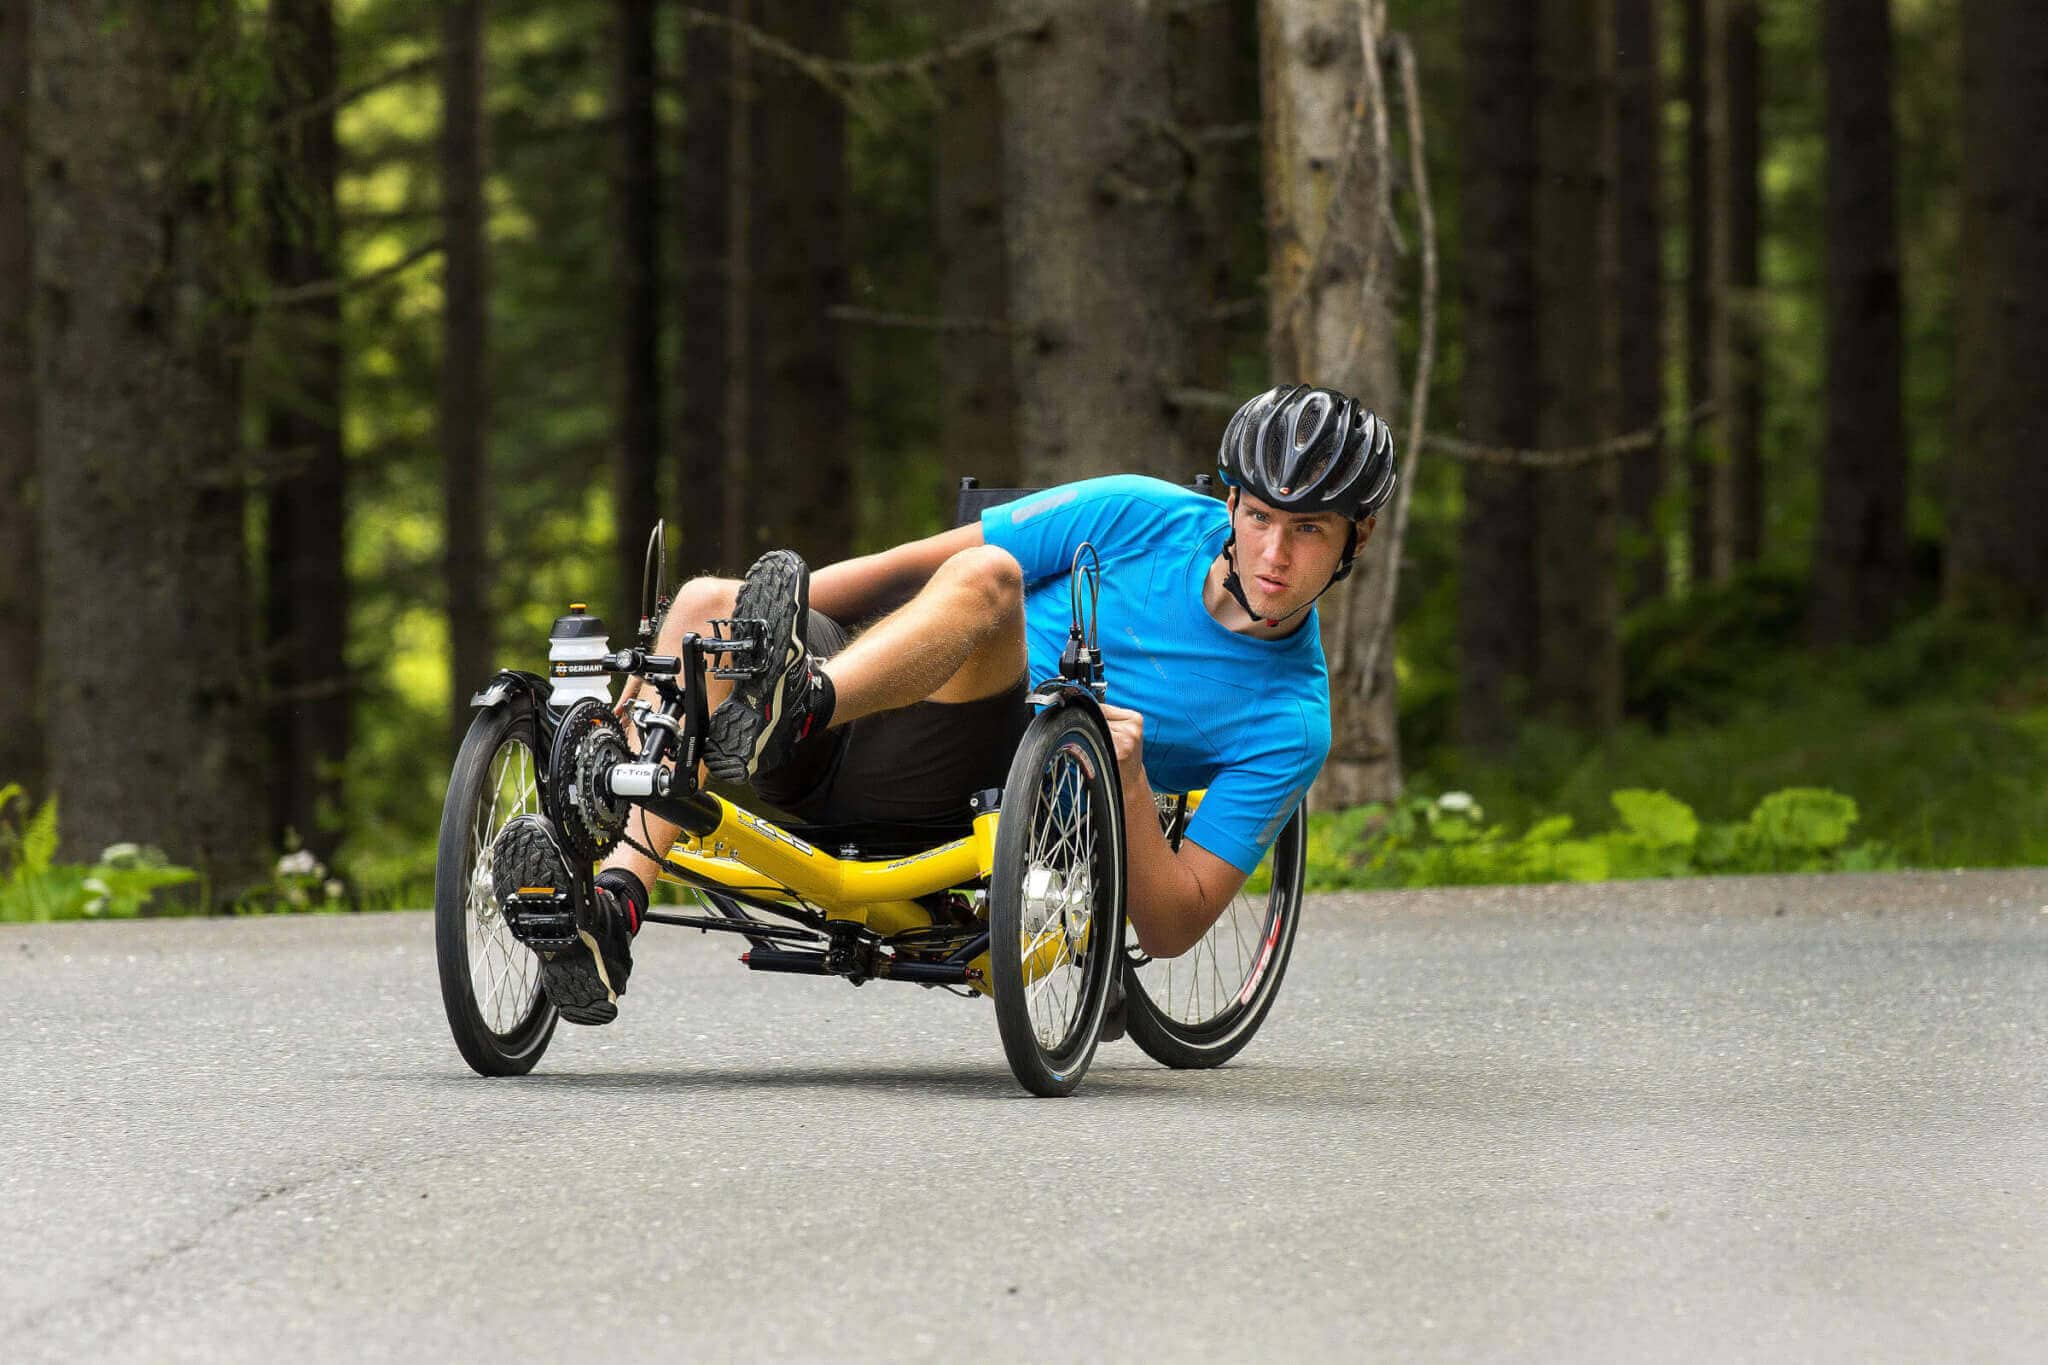 T-Tris 26 our fastest recumbent trike | Build your own | AZUB recumbents